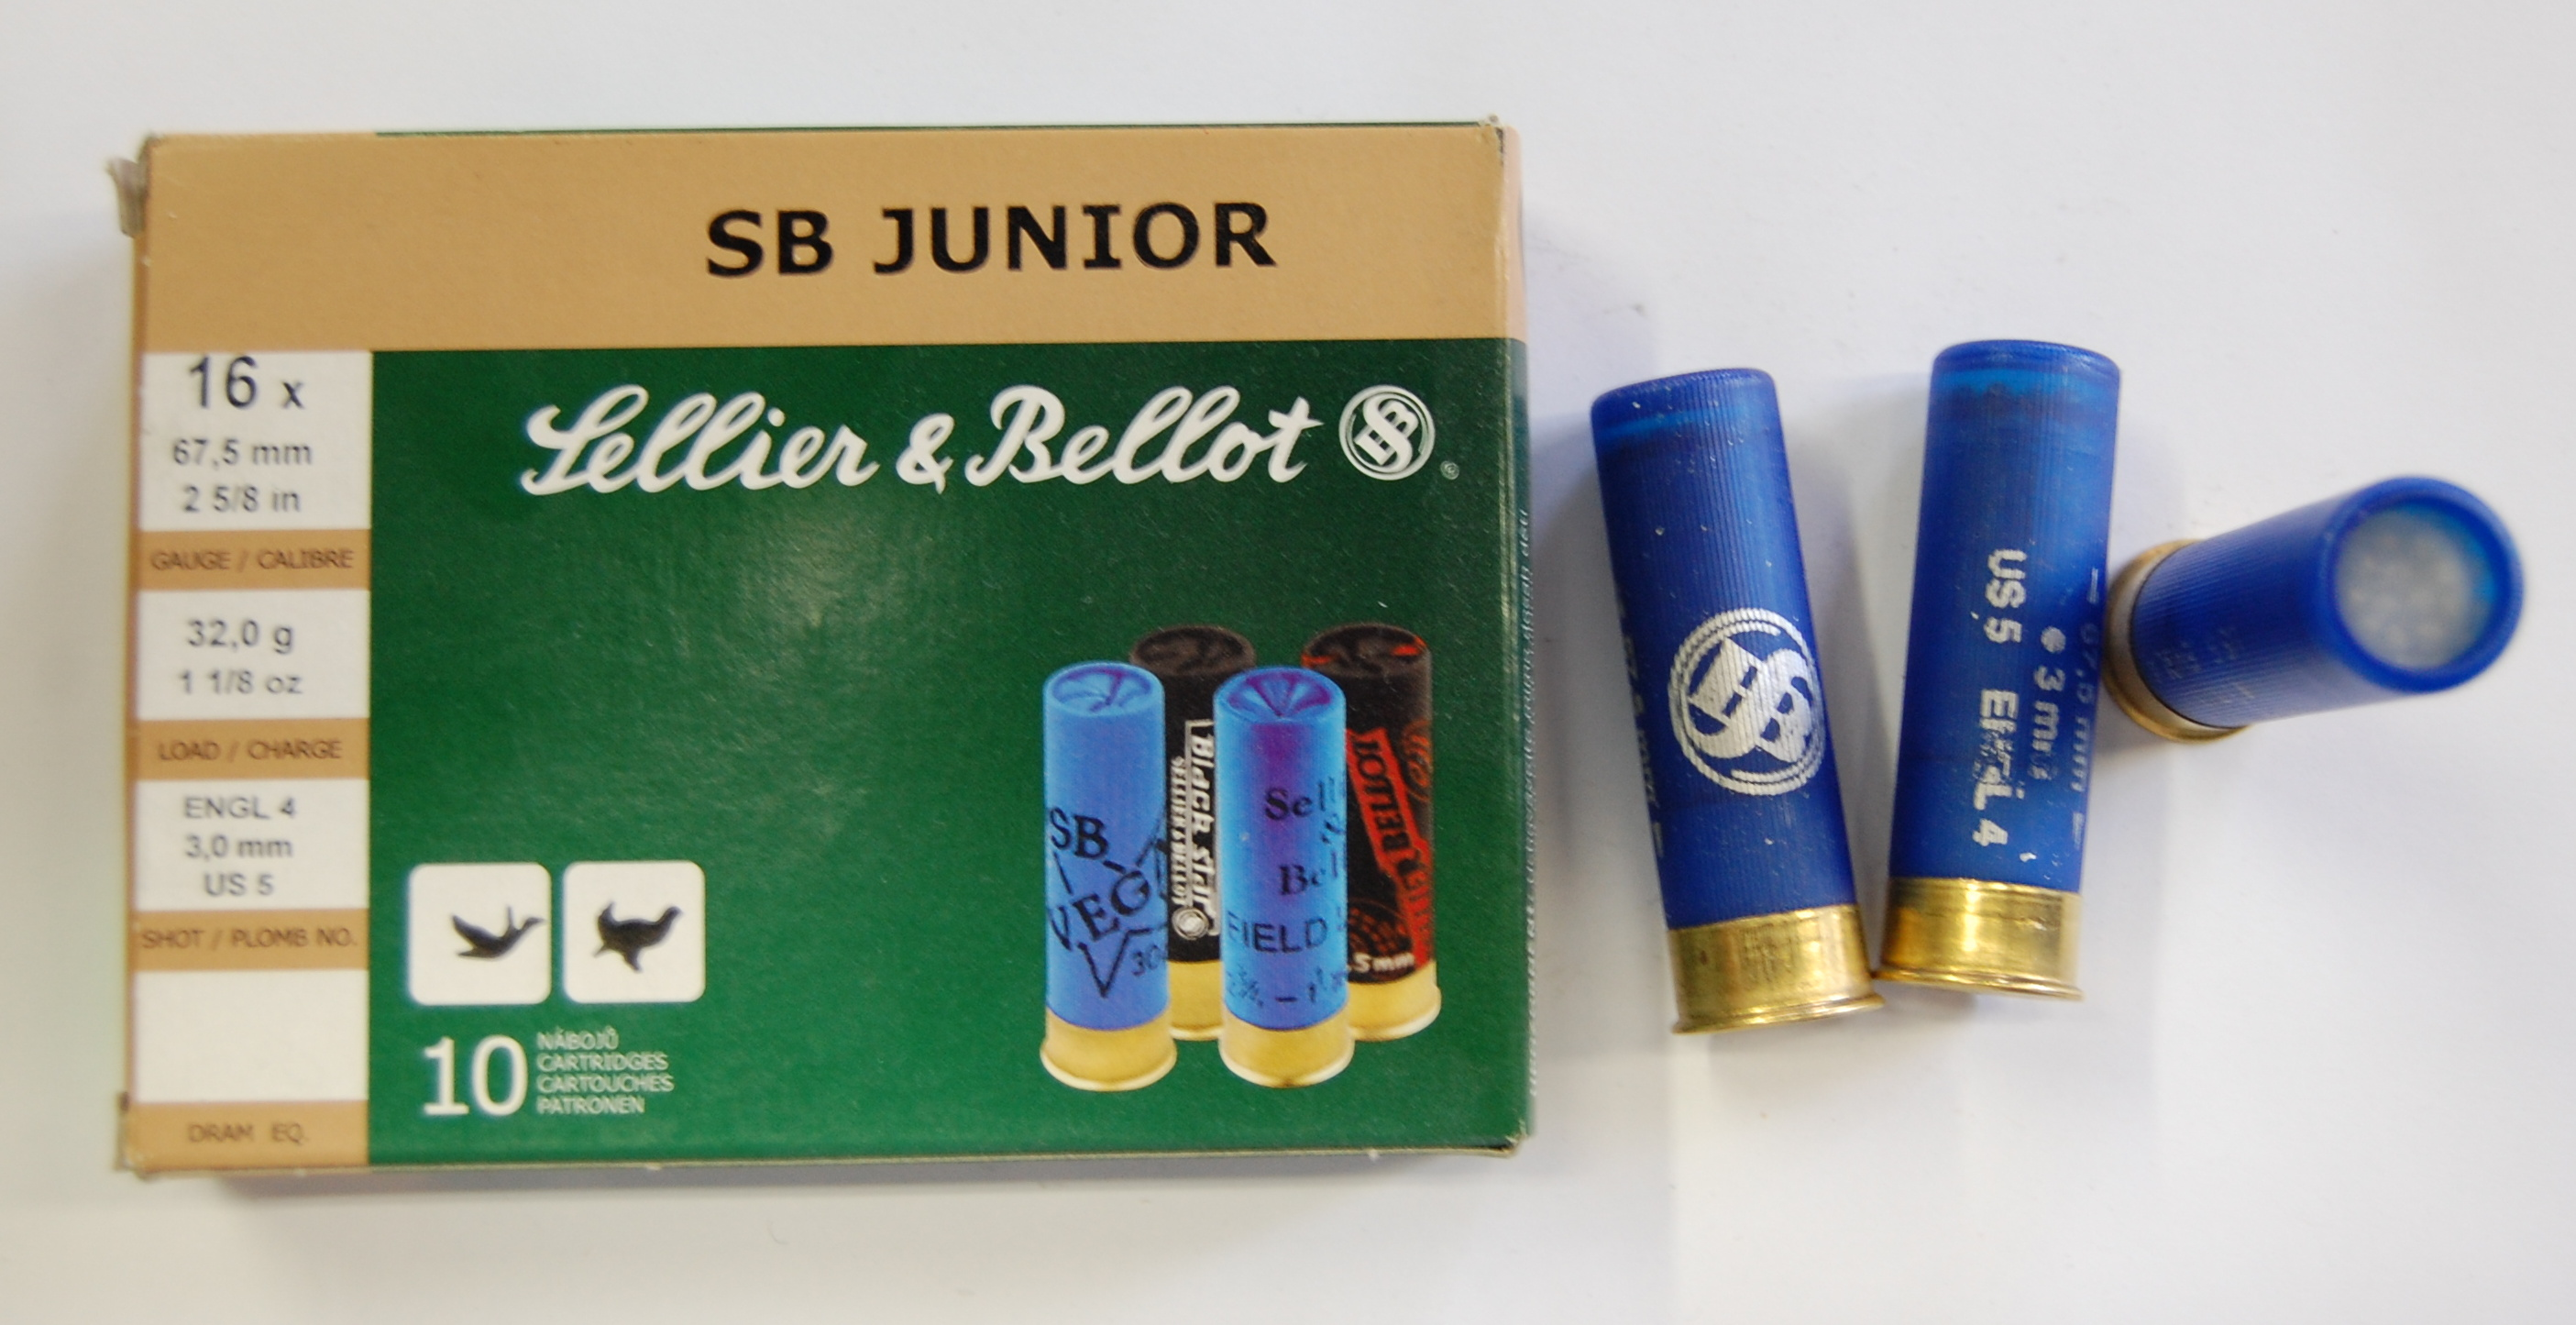 SB 16/67,5/4,5 MM SB JUNIOR 32G